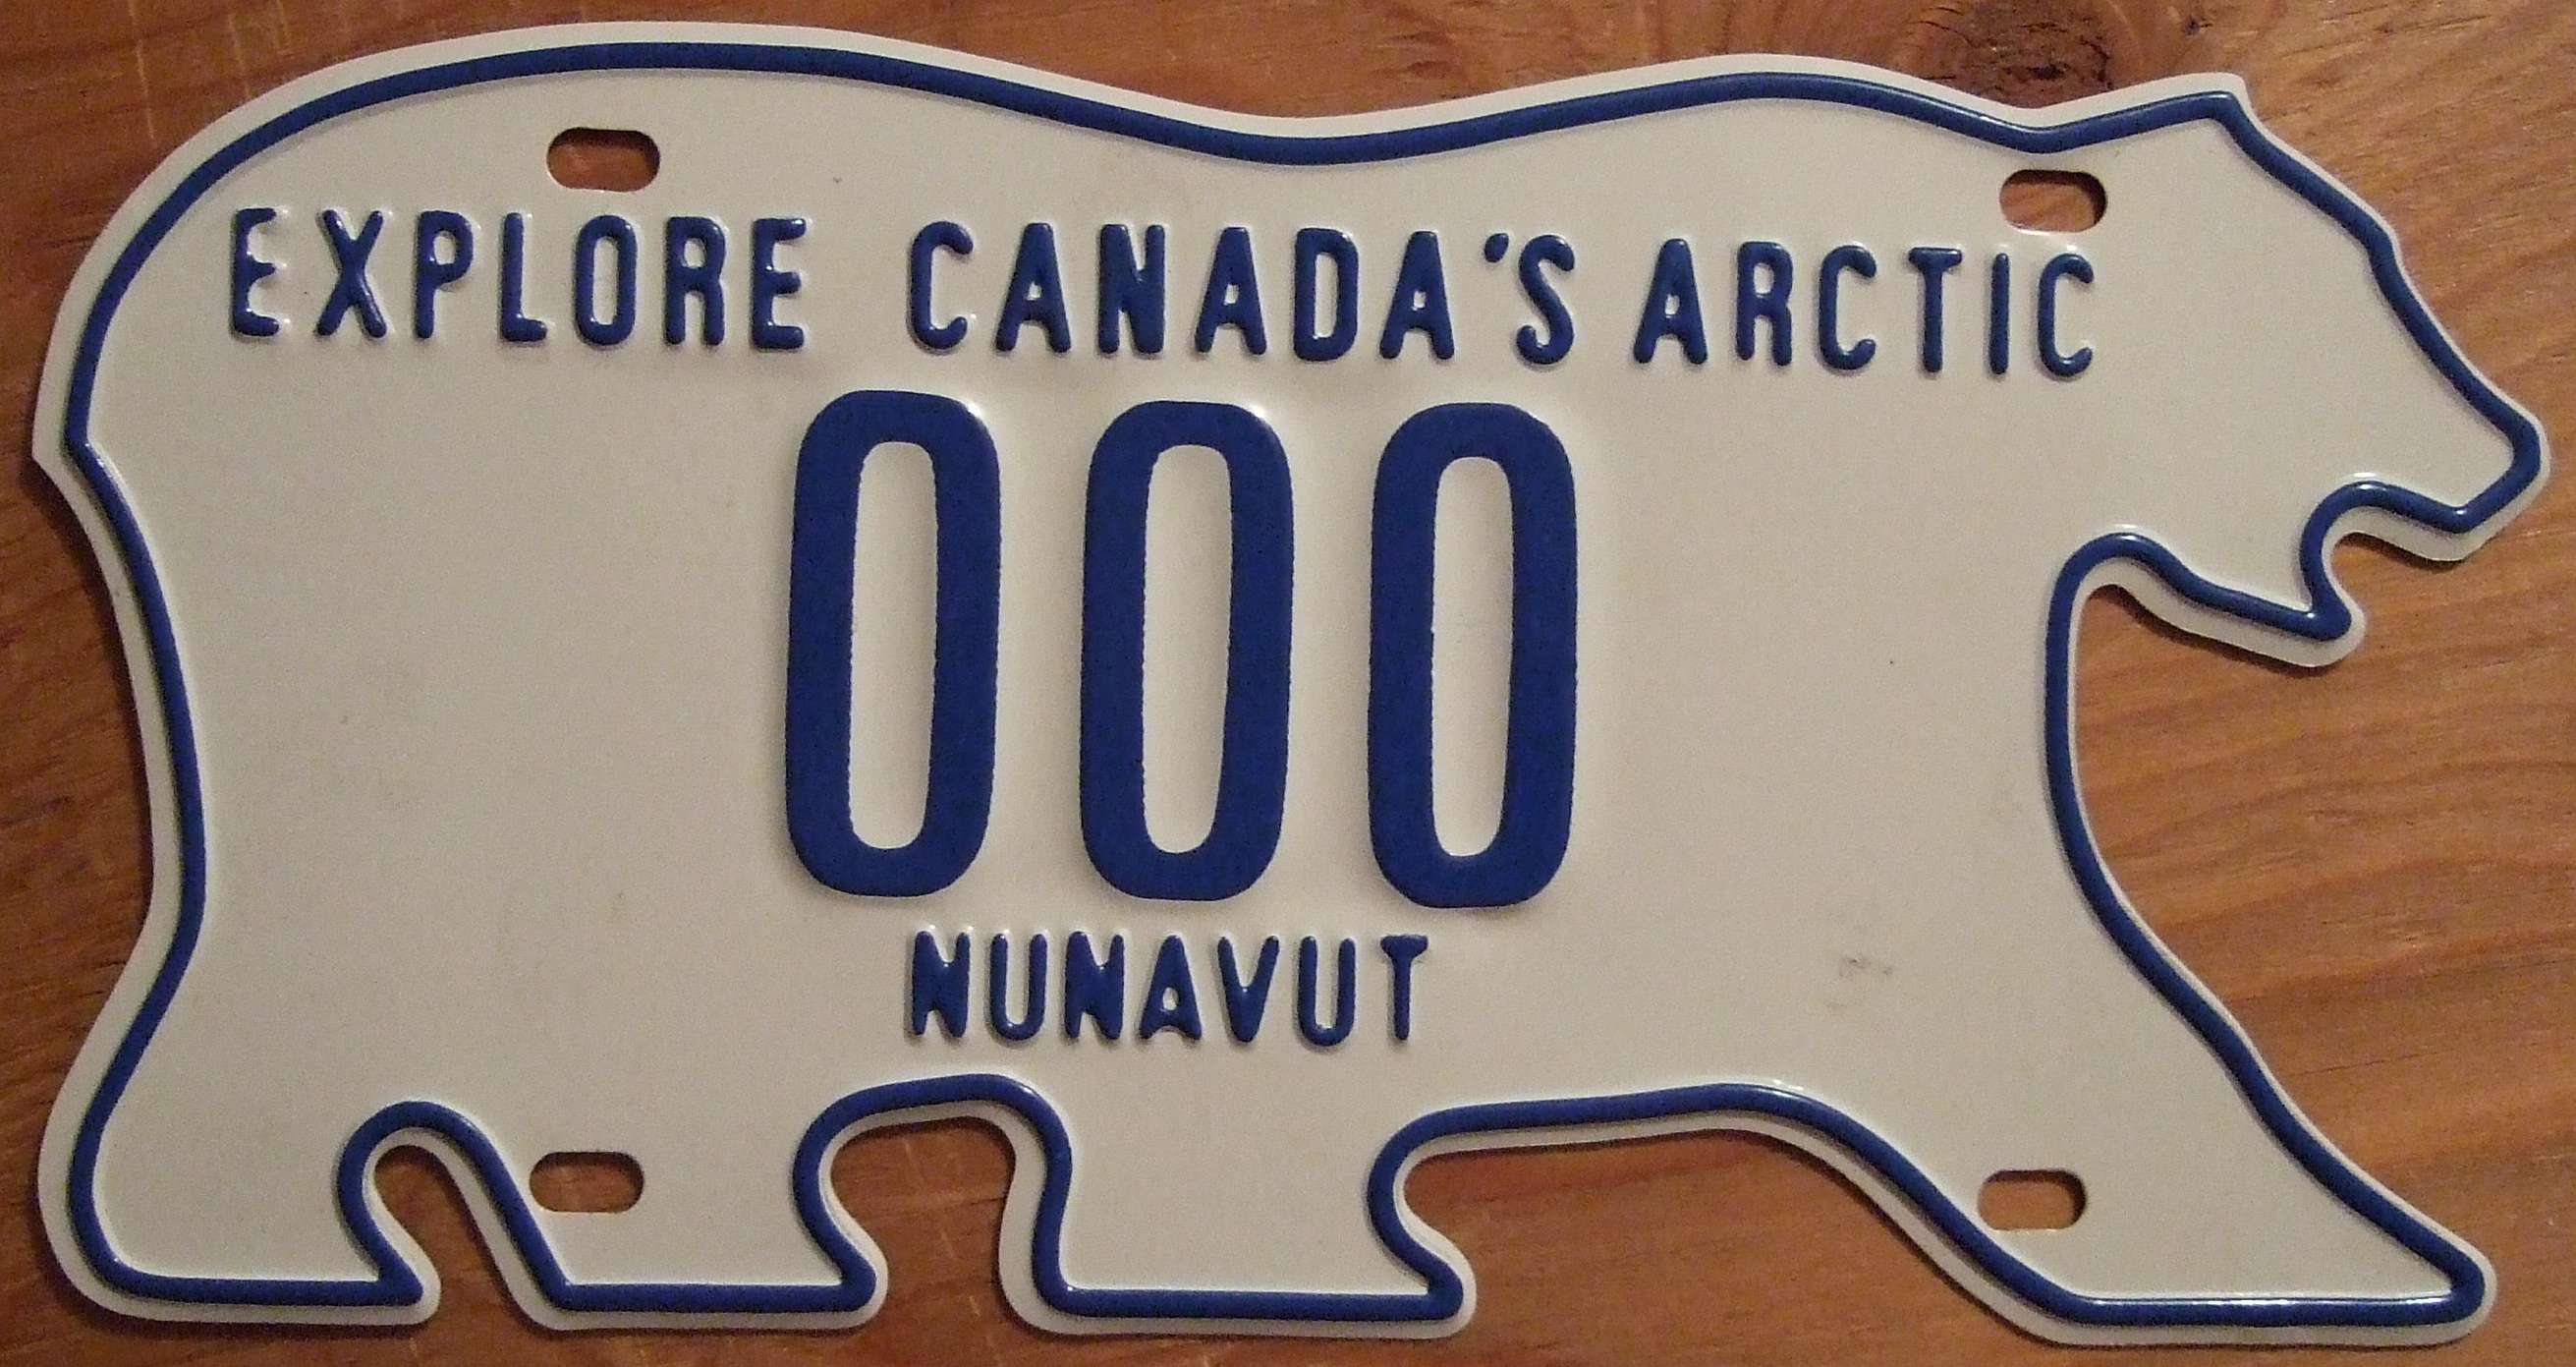 Canadian Northwest Territories License plates are shaped like polar bears.